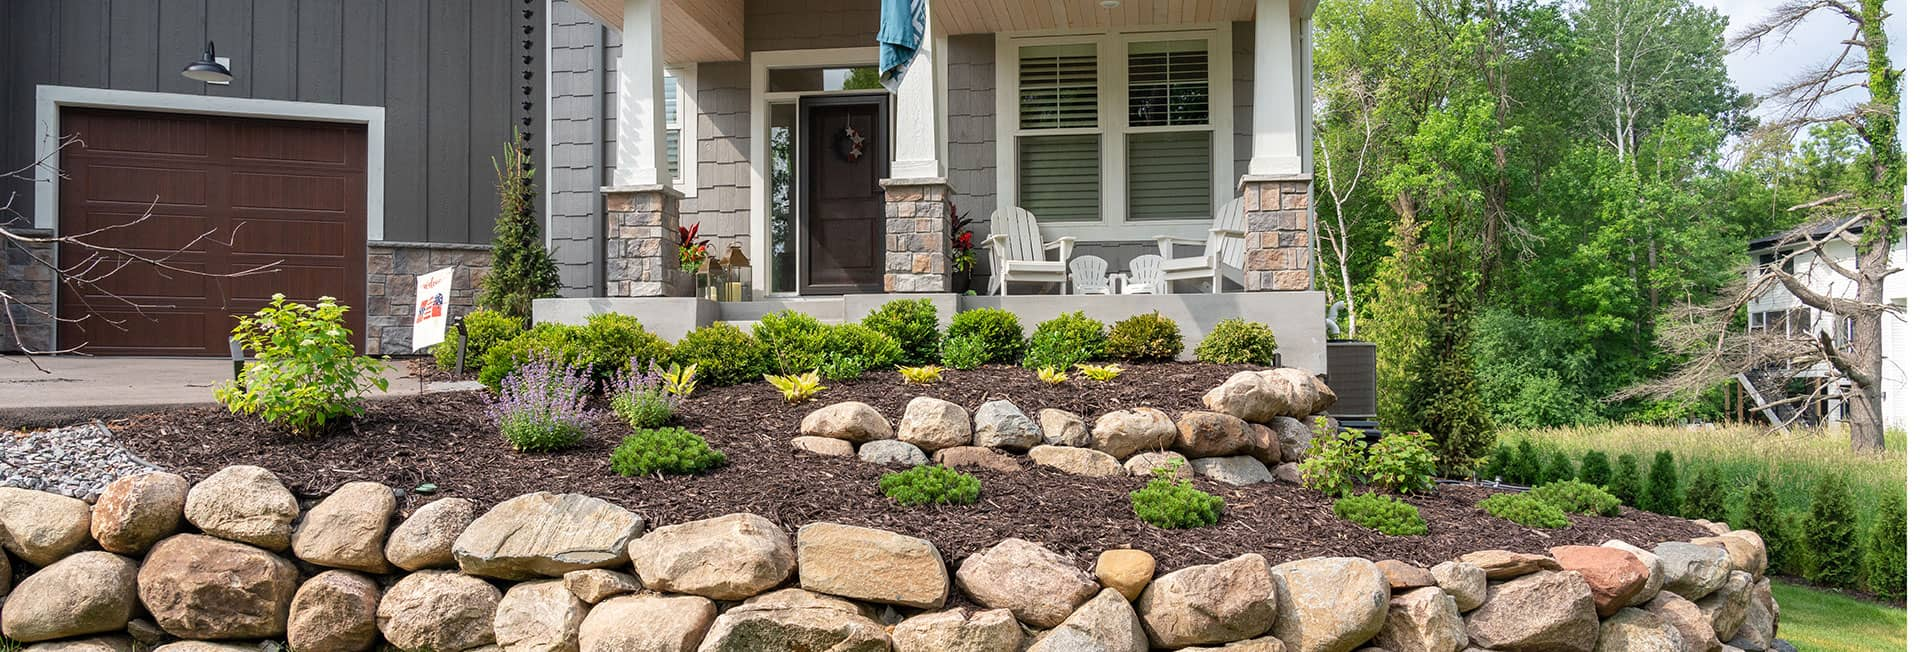 North-Metro-Landscaping-care-tips.jpg